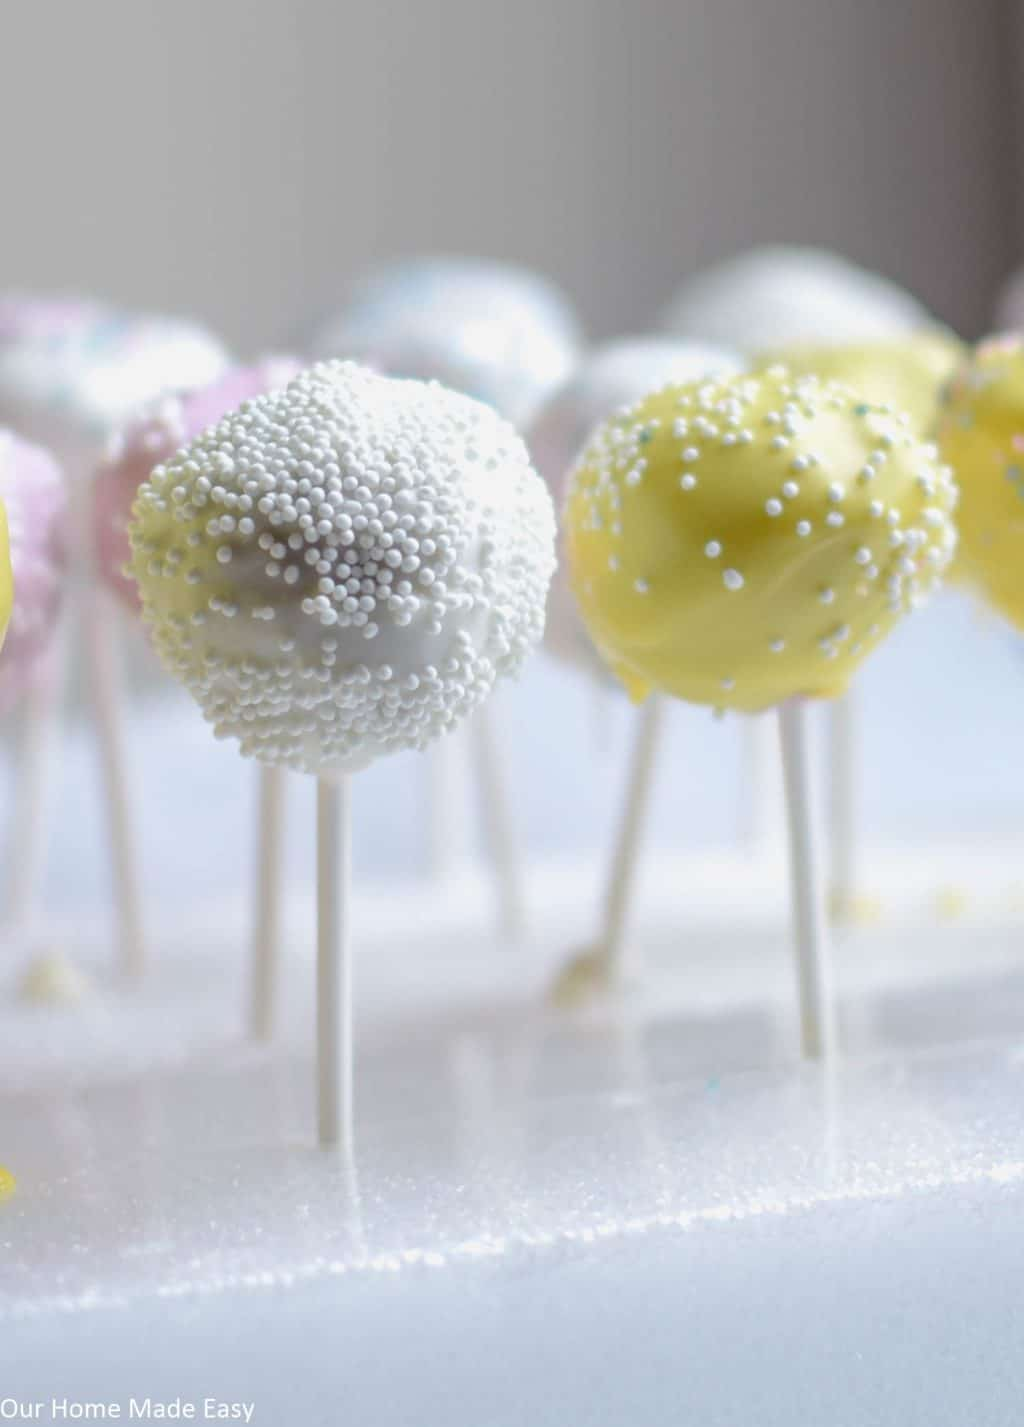 Make these easy Easter cake pops at home! Your kids will love these poppable treats.